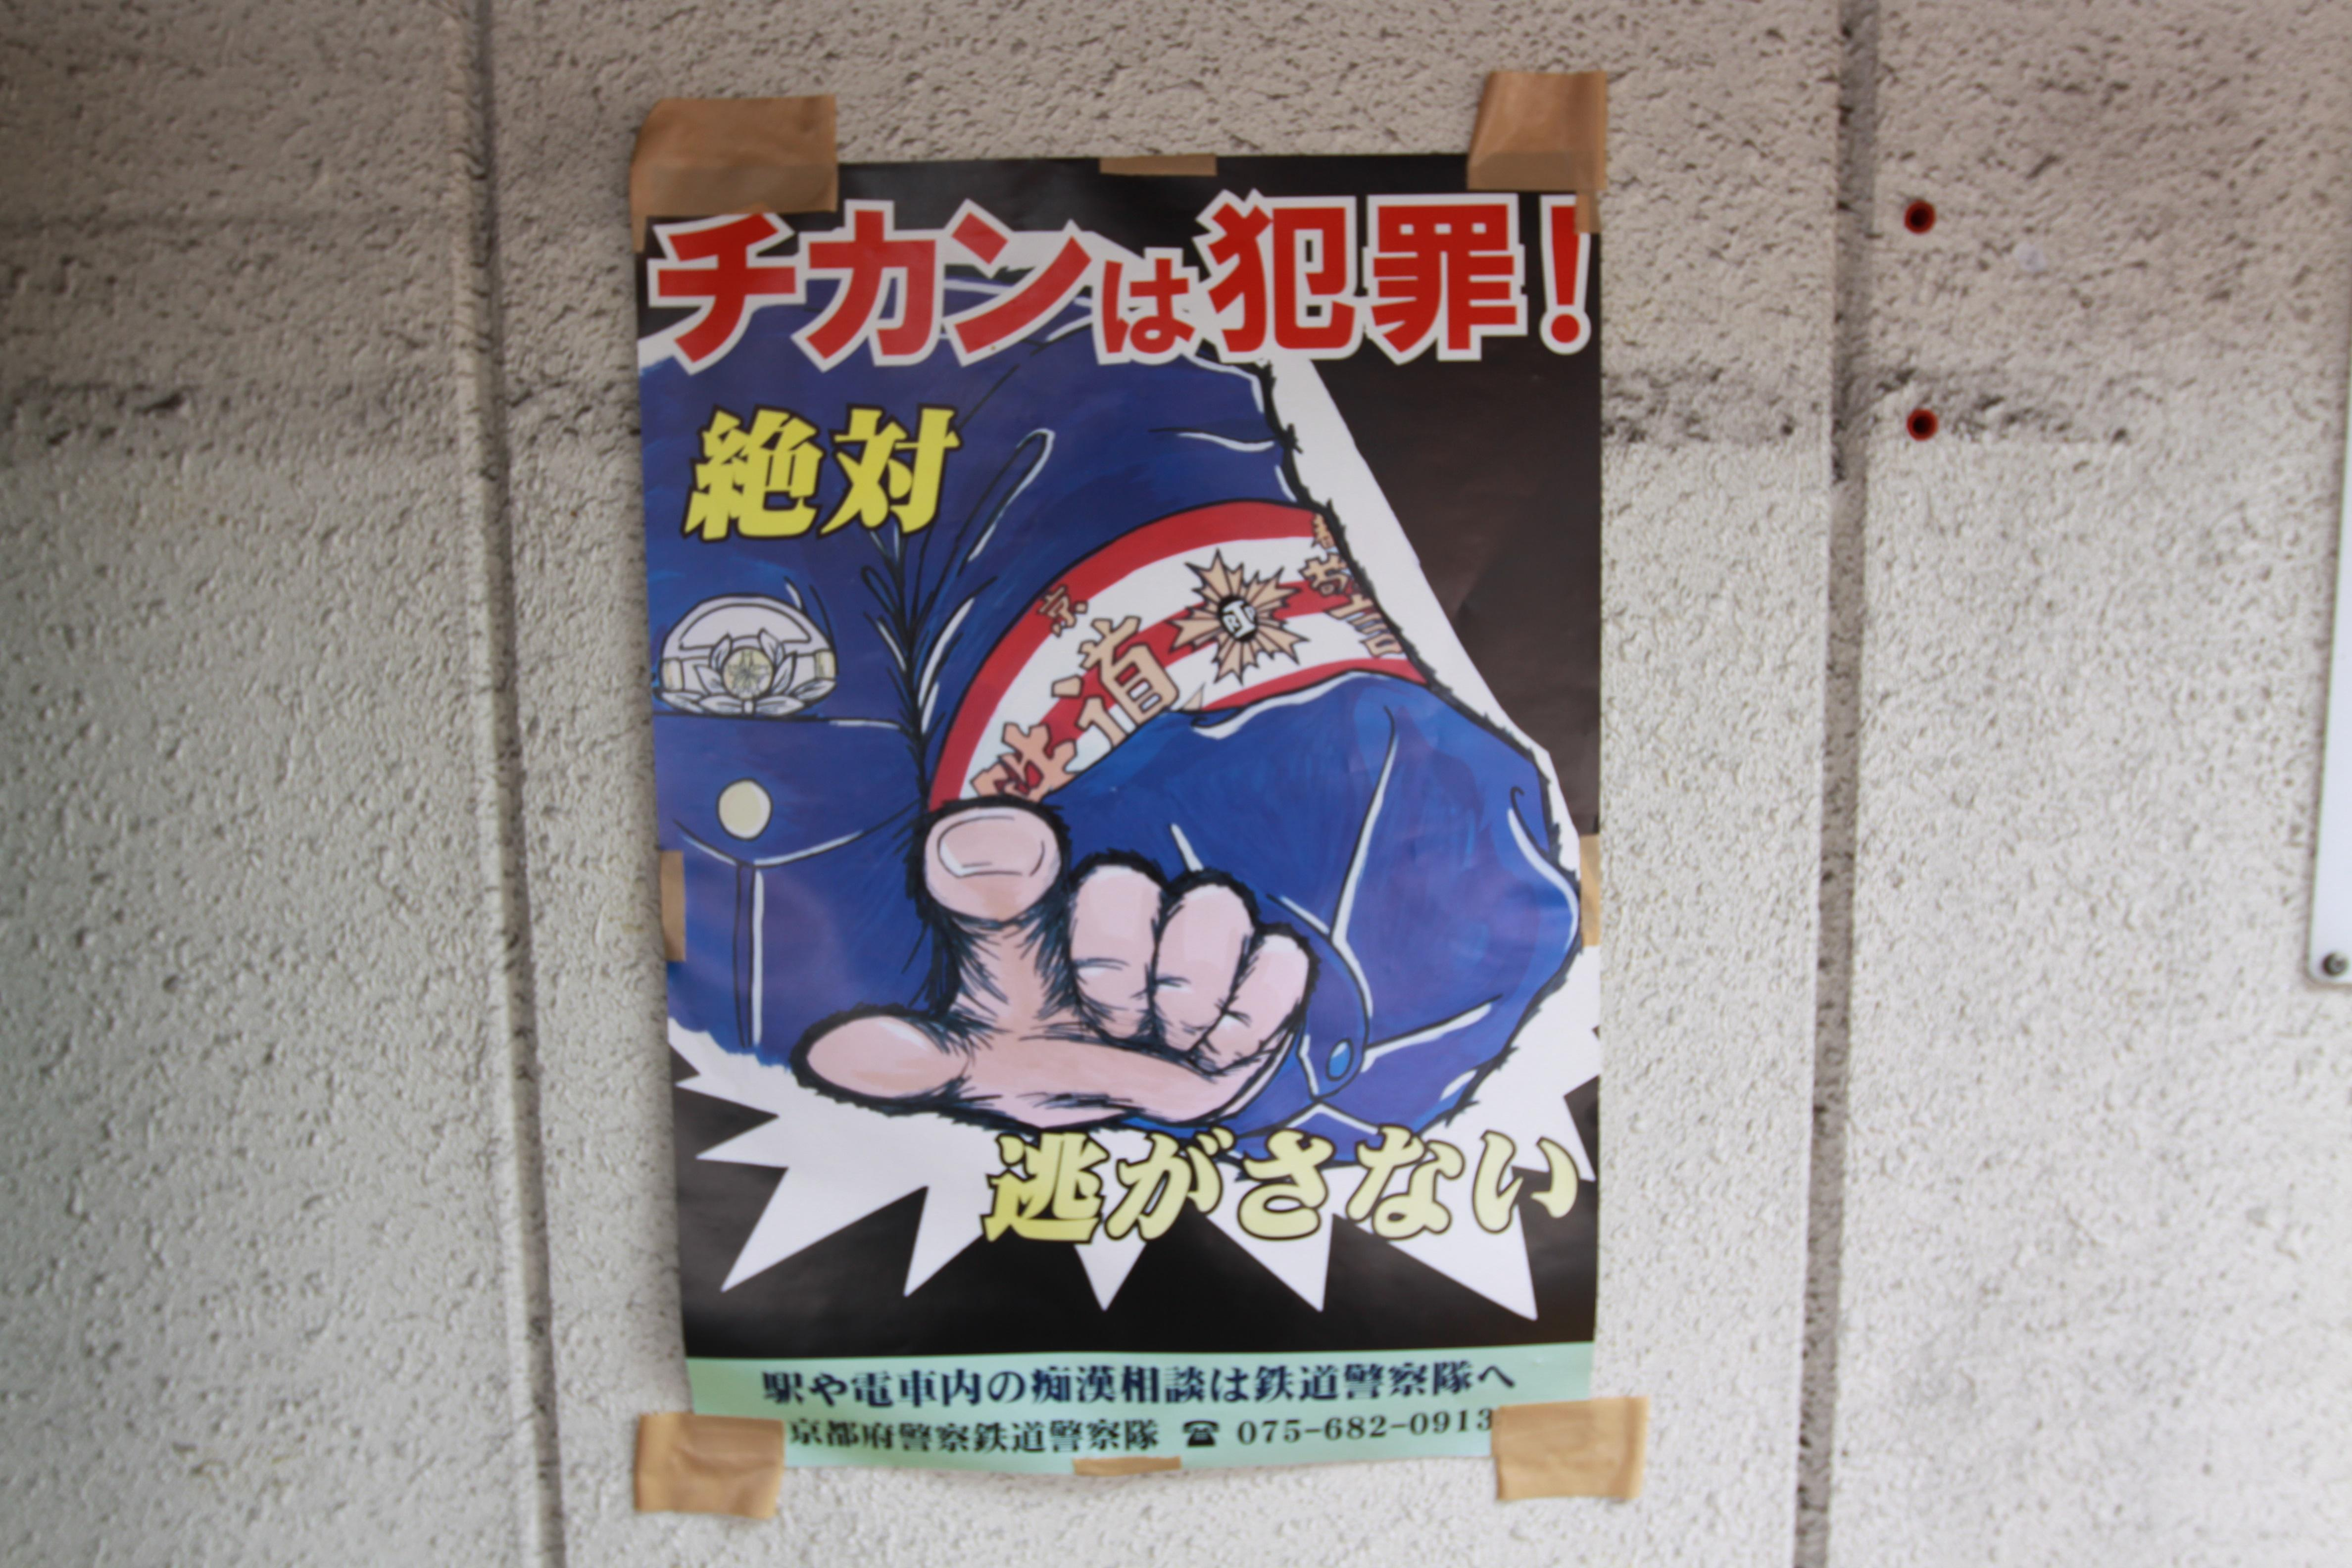 Kyoto Police Poster